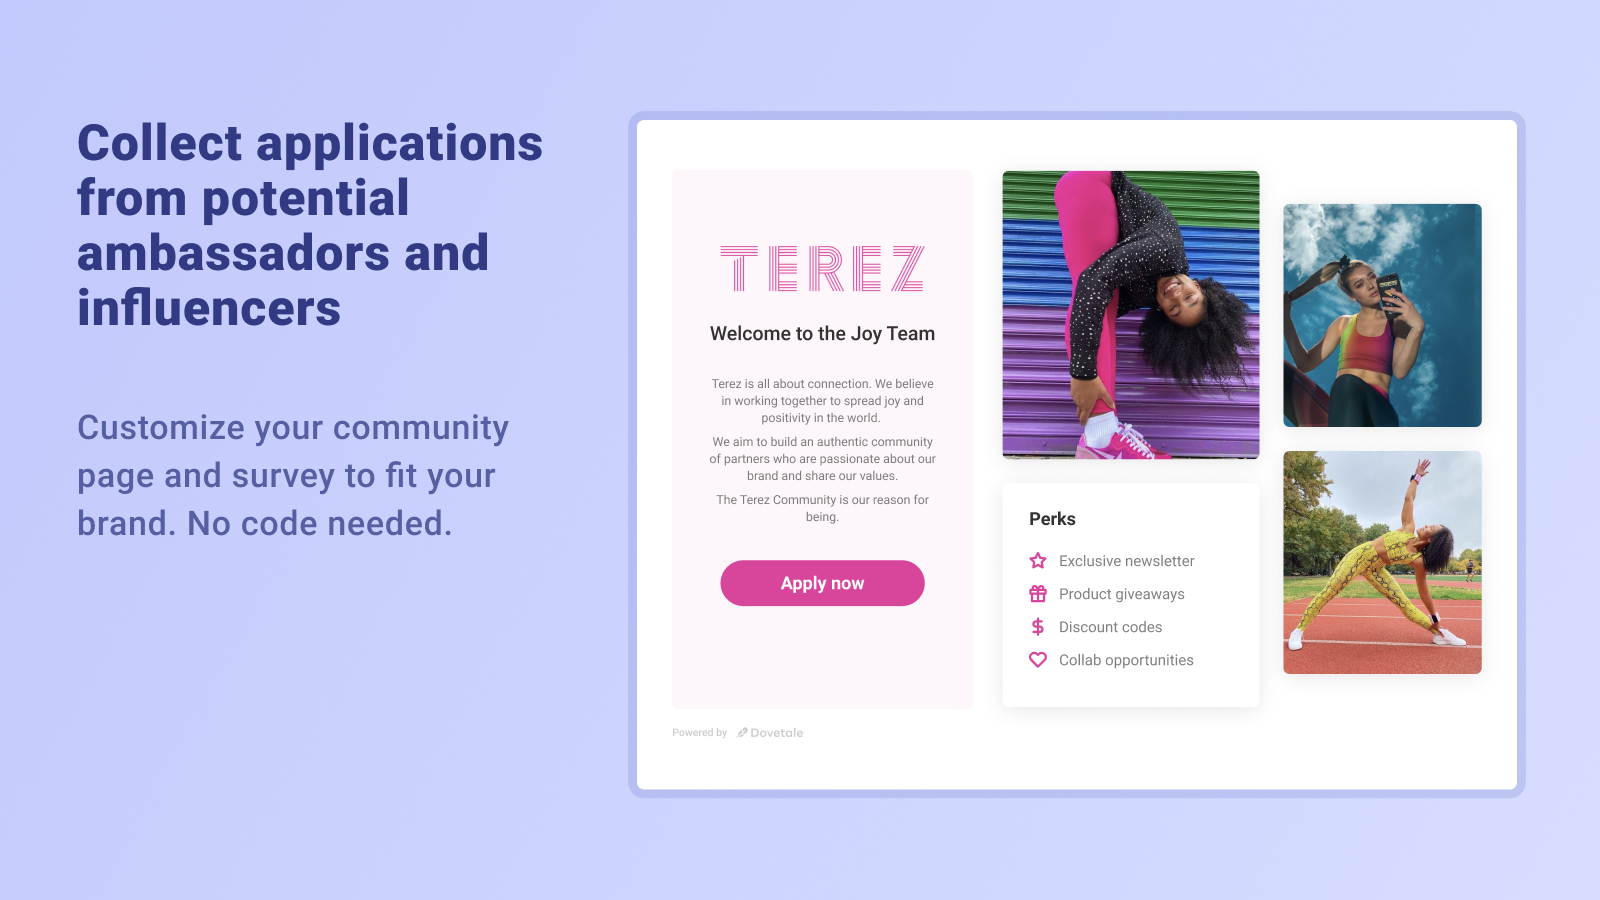 Create a beautiful application page in minutes